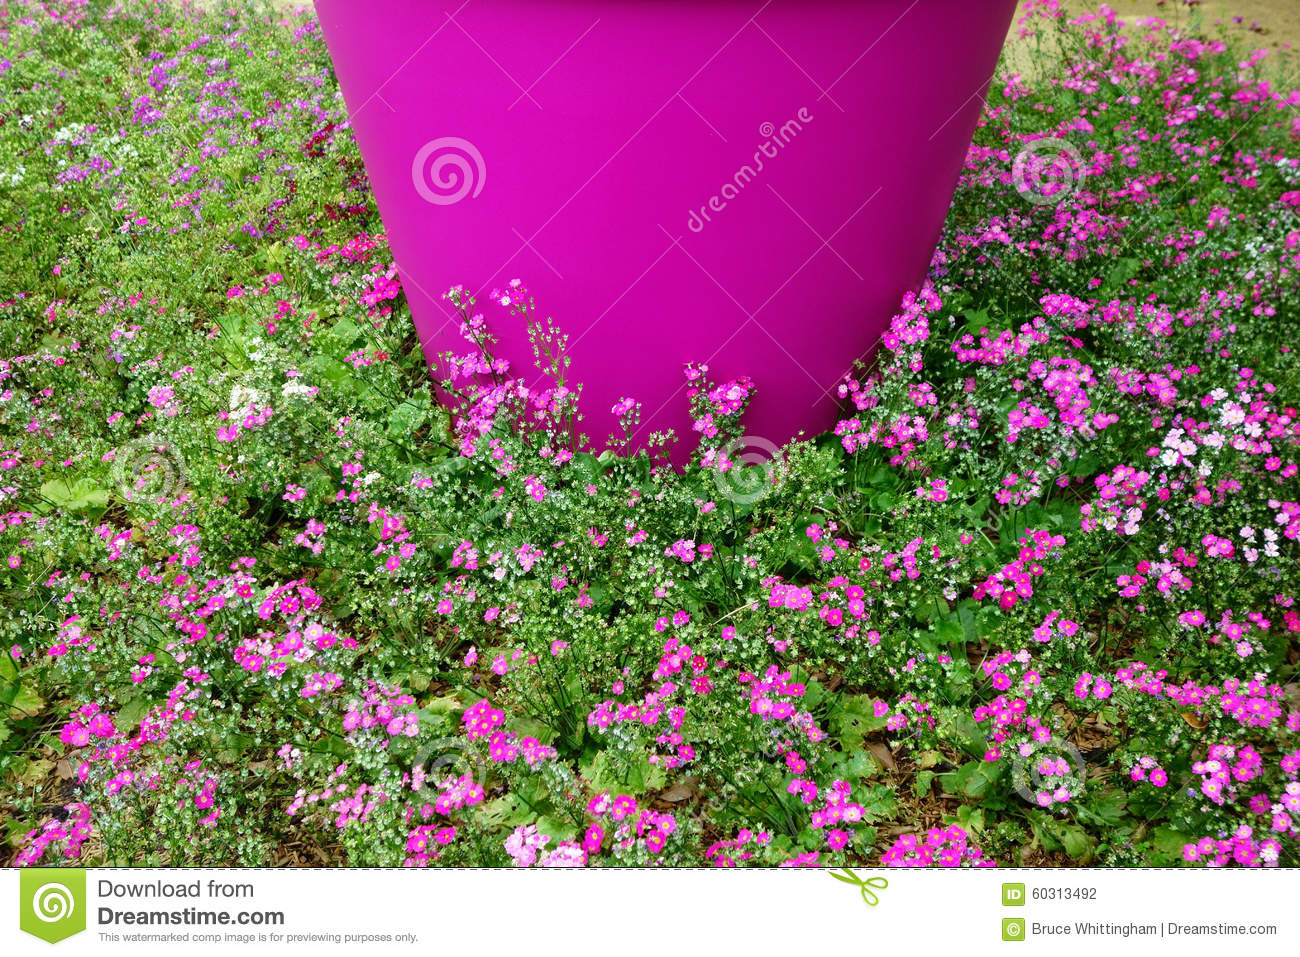 Pink flowers in ground cover stock photo image of flower download comp mightylinksfo